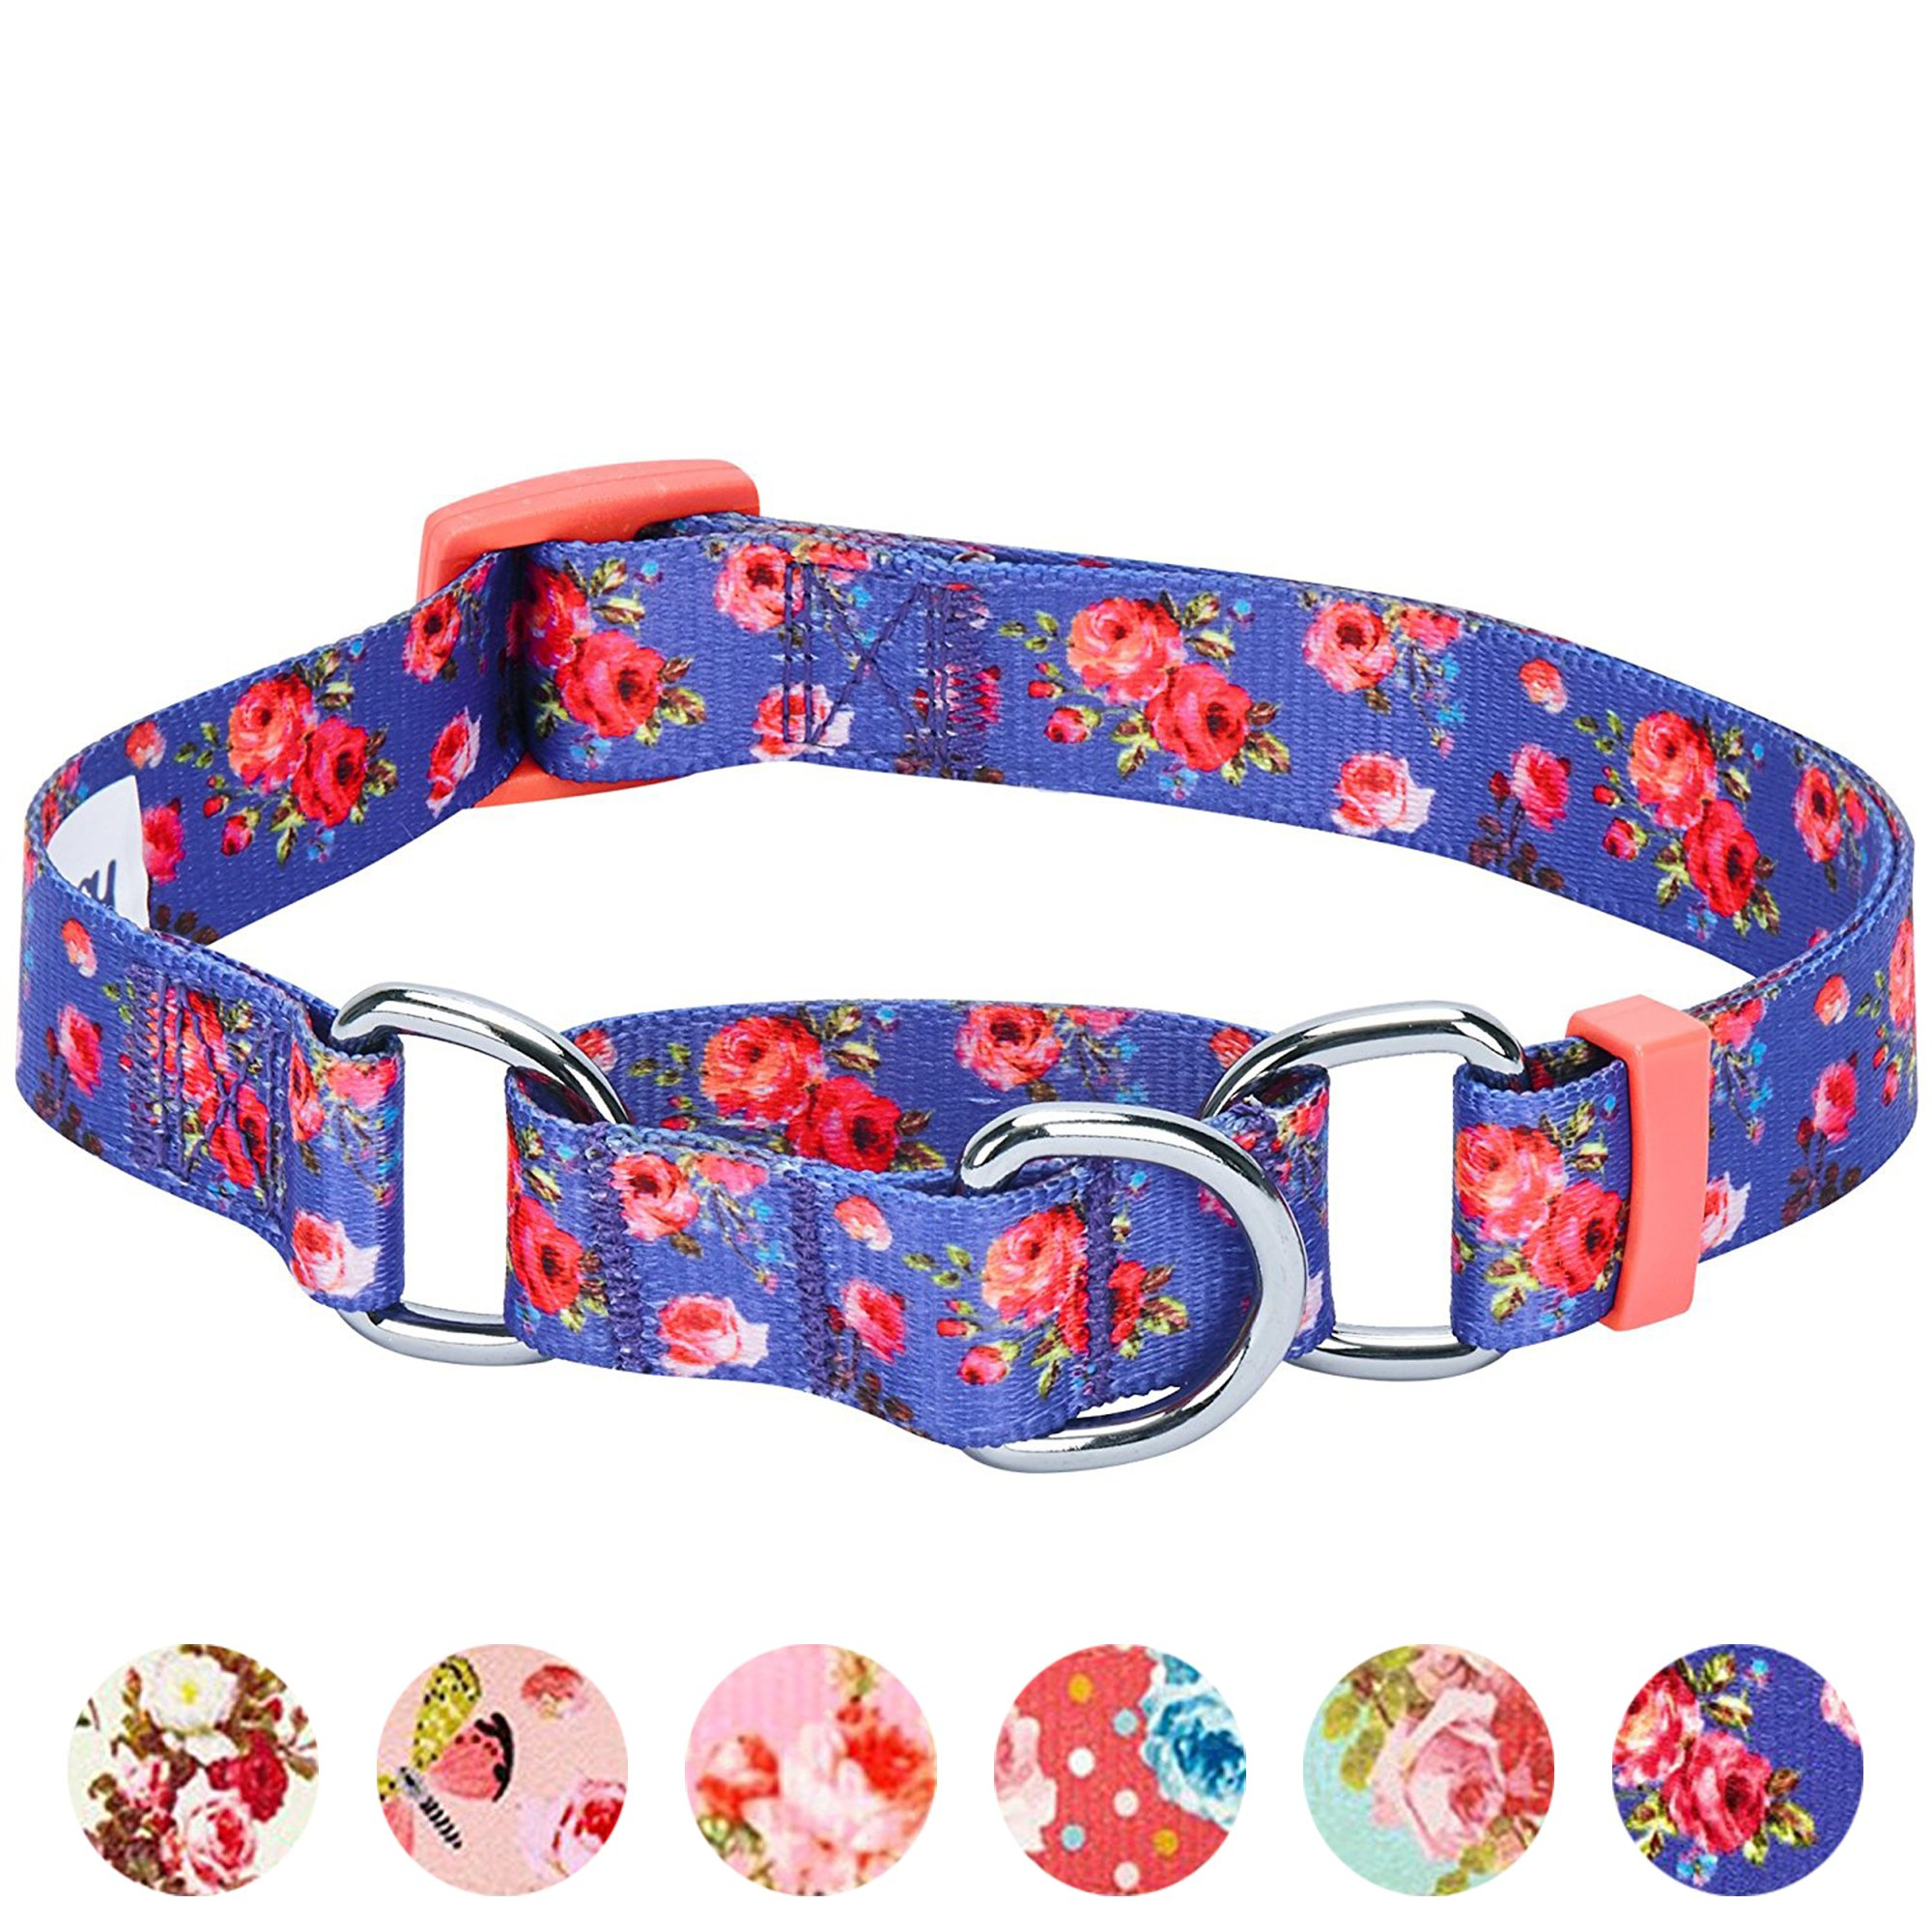 Blueberry Pet 6 Patterns Spring Scent Inspired Rose Print Safety Training Martingale Dog Collar, Irish Blue, X-Small, Heavy Duty Adjustable Collars for Dogs